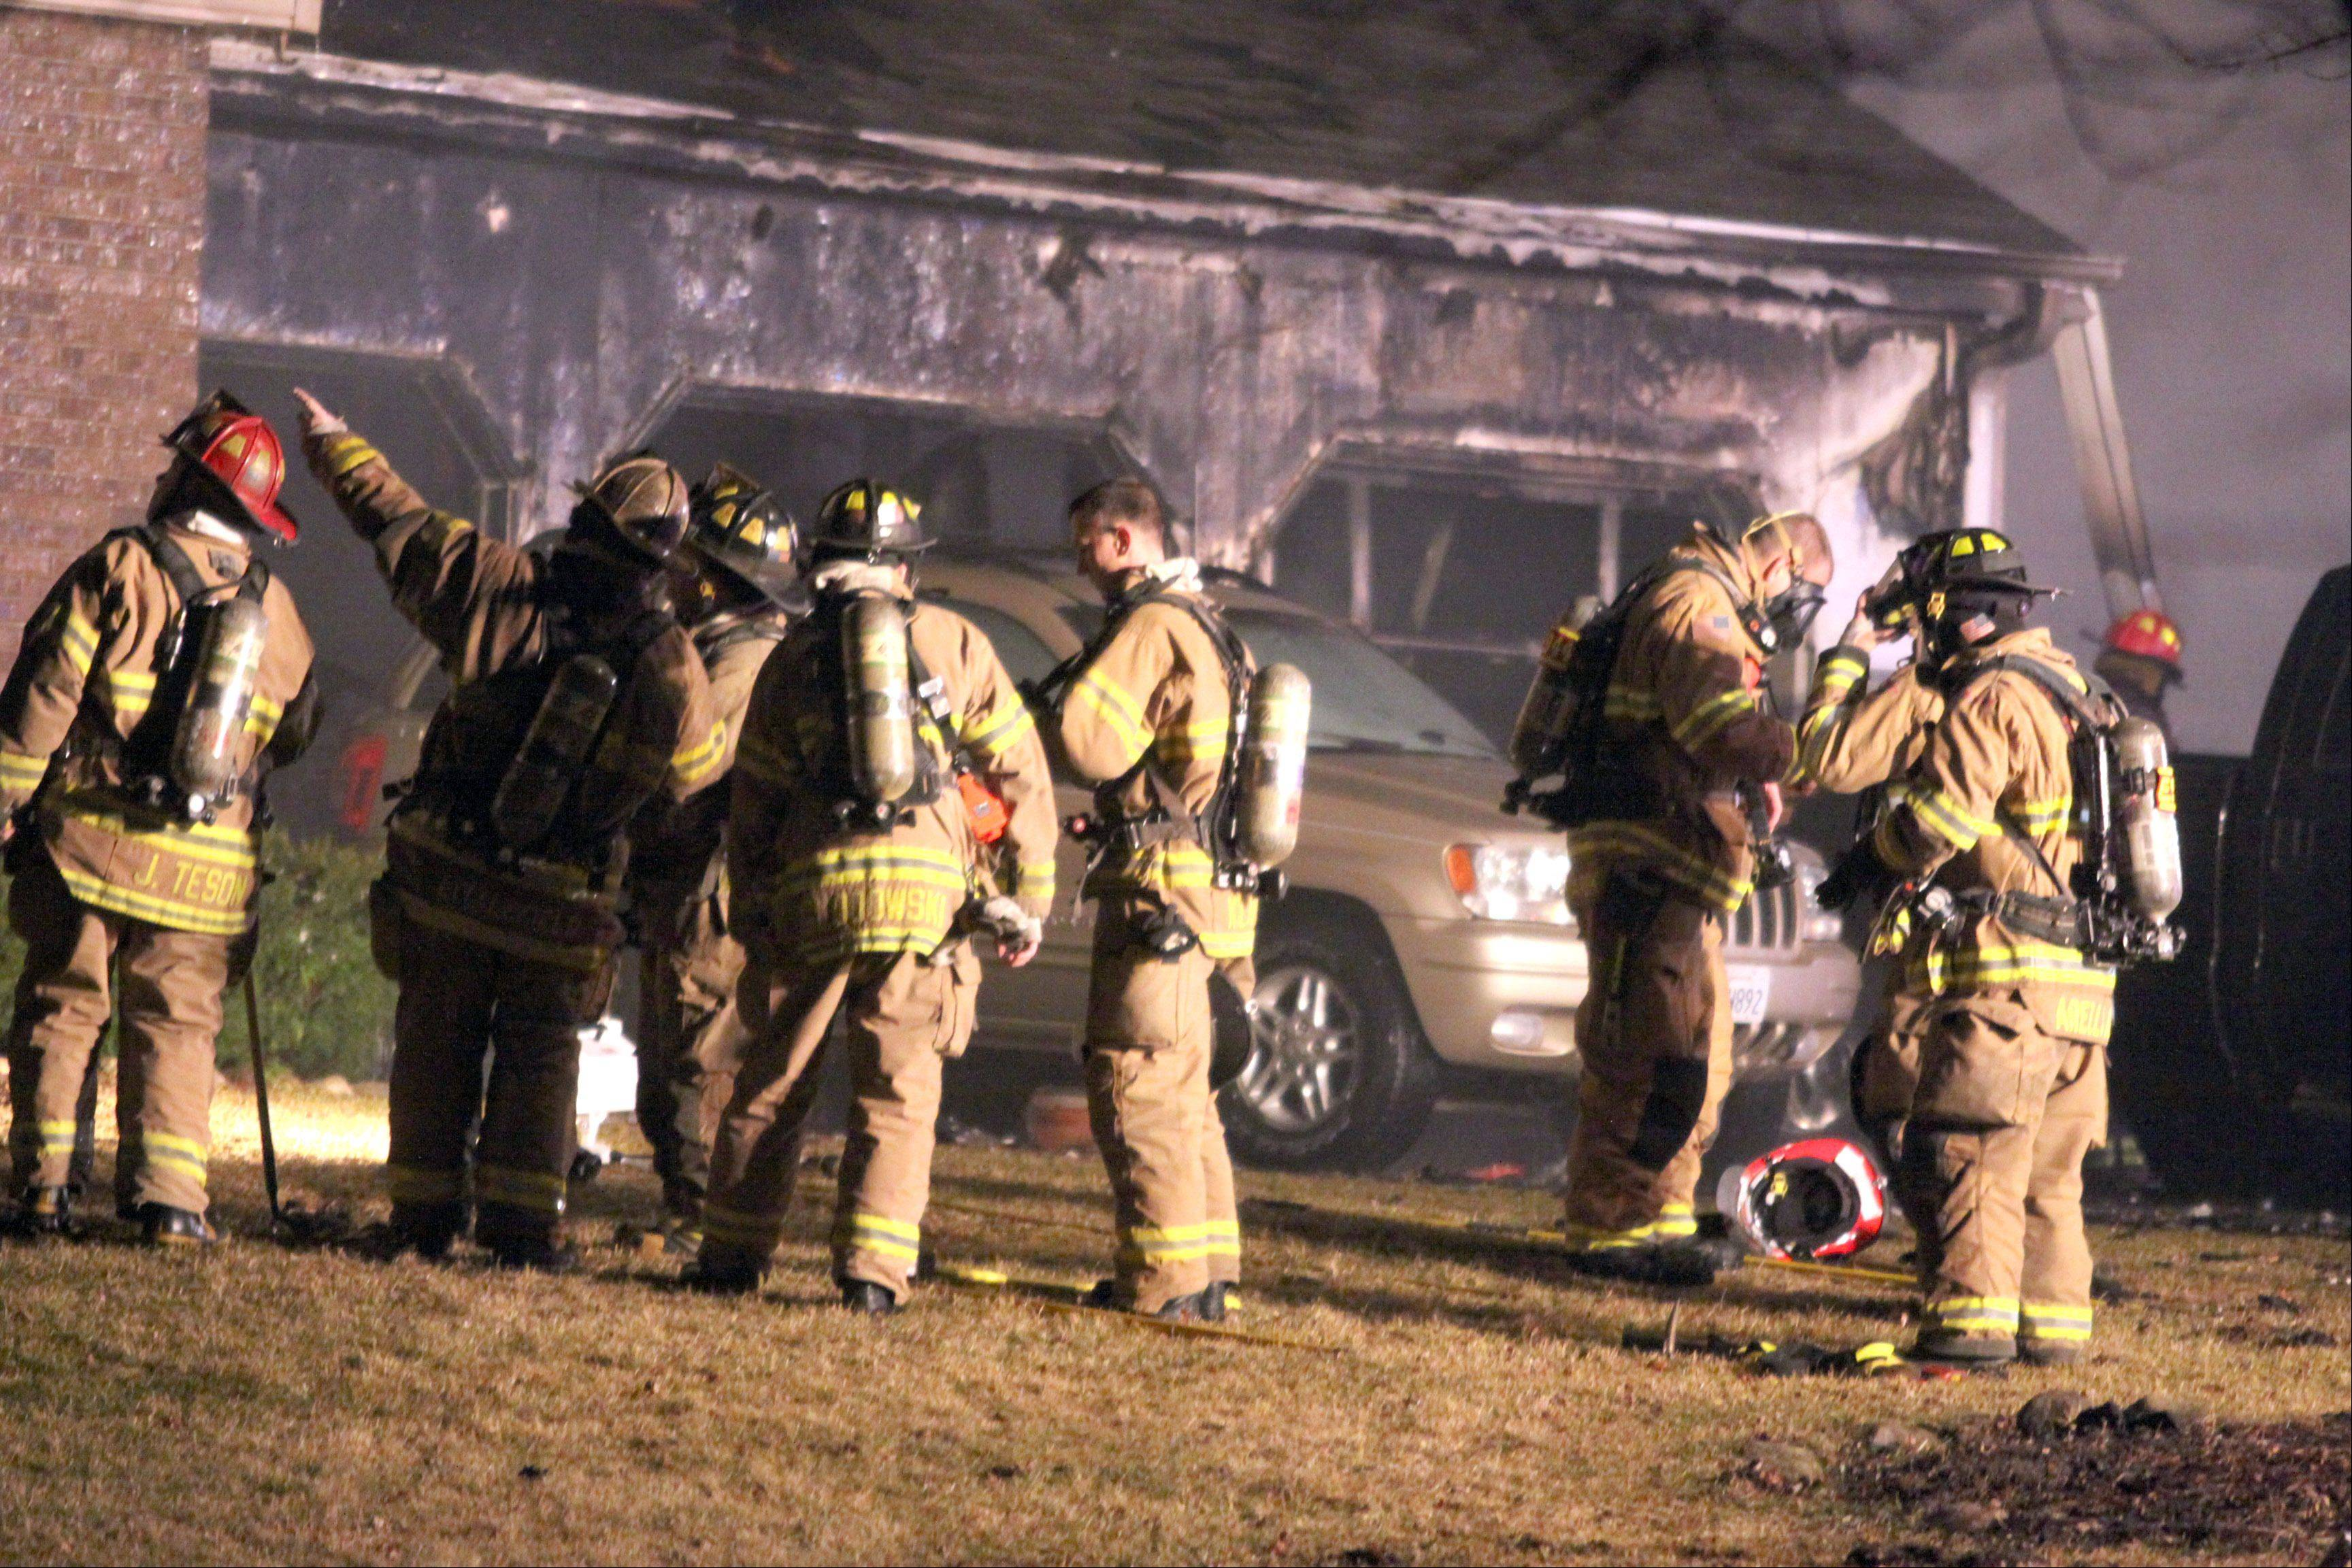 The fire in Algonquin started in the garage and spread to the rest of the house Monday night.